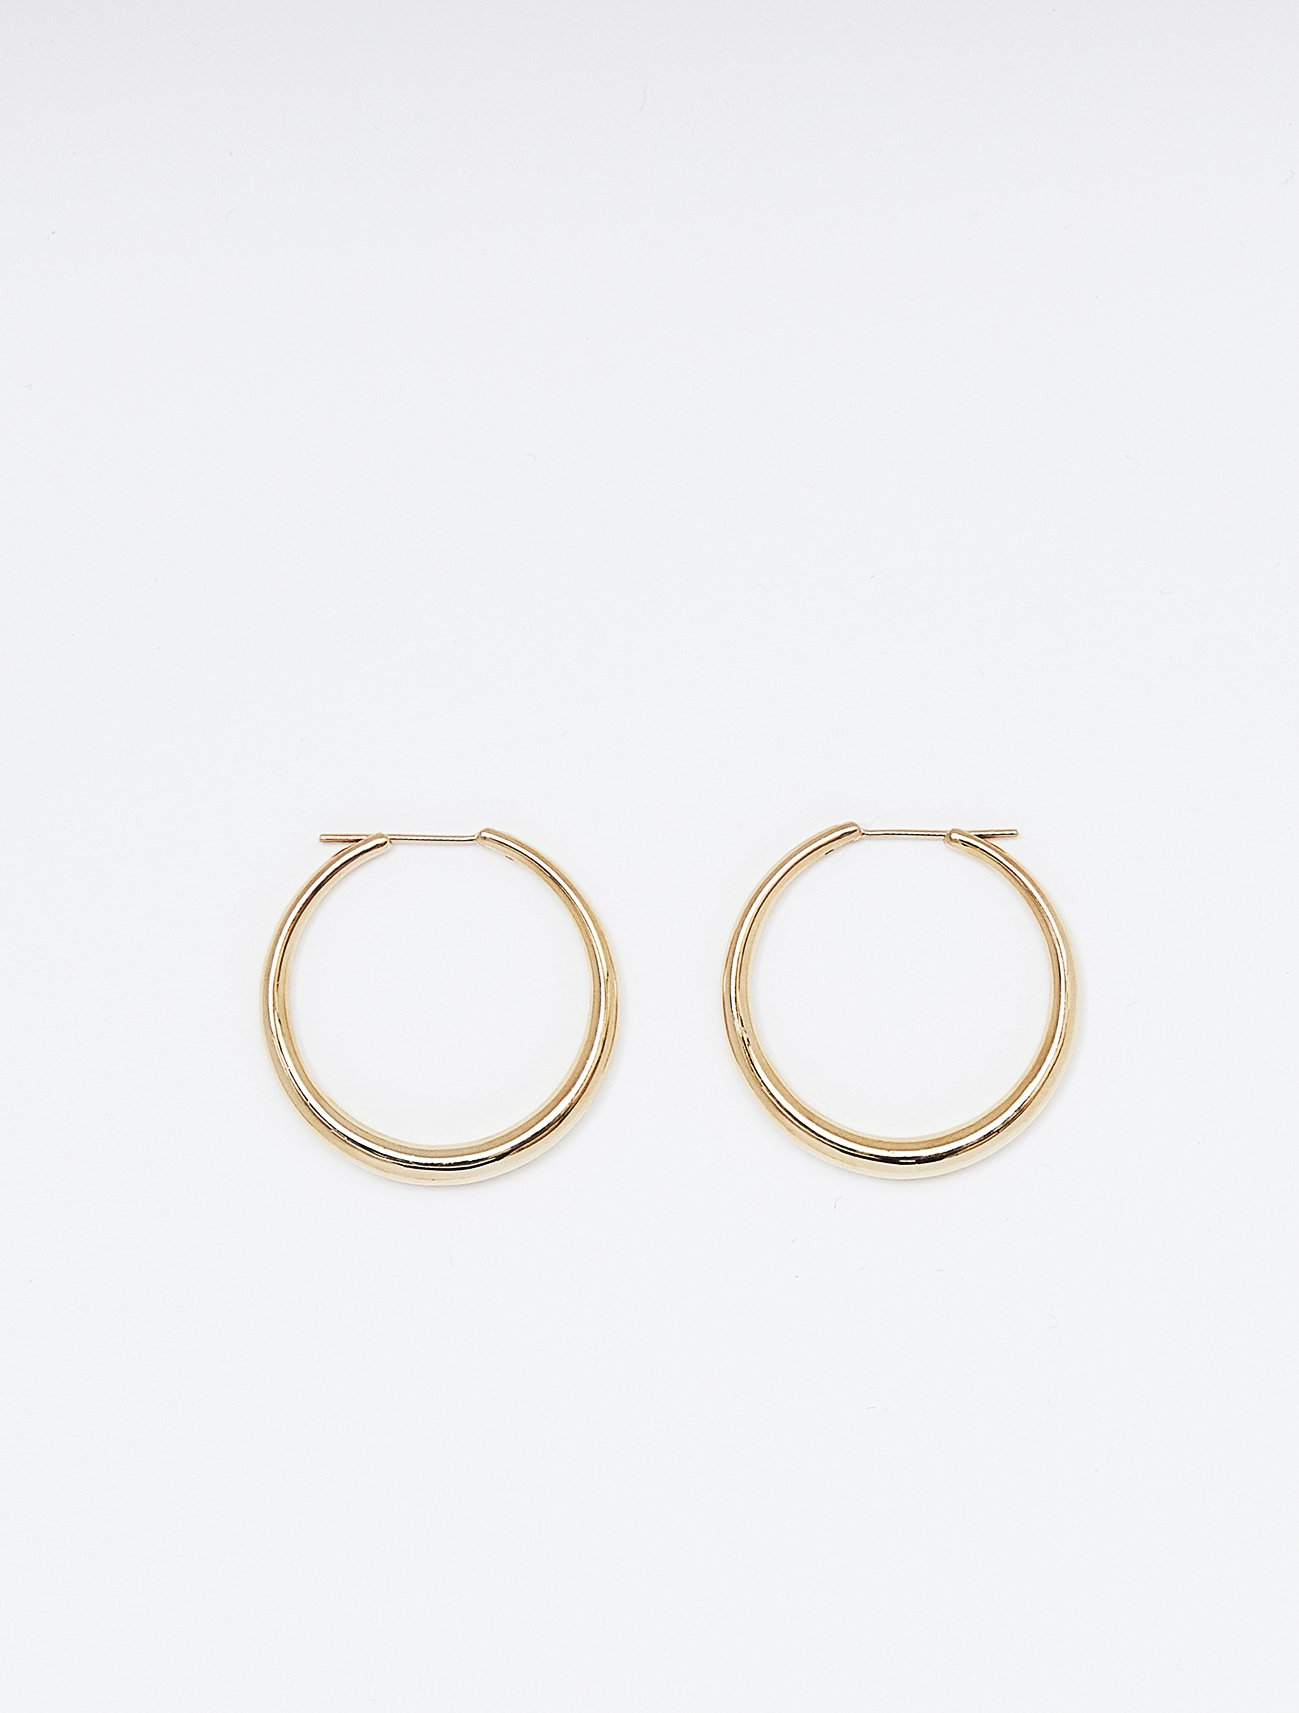 SOPHISTICATED VINTAGE / Authentic hoop earring